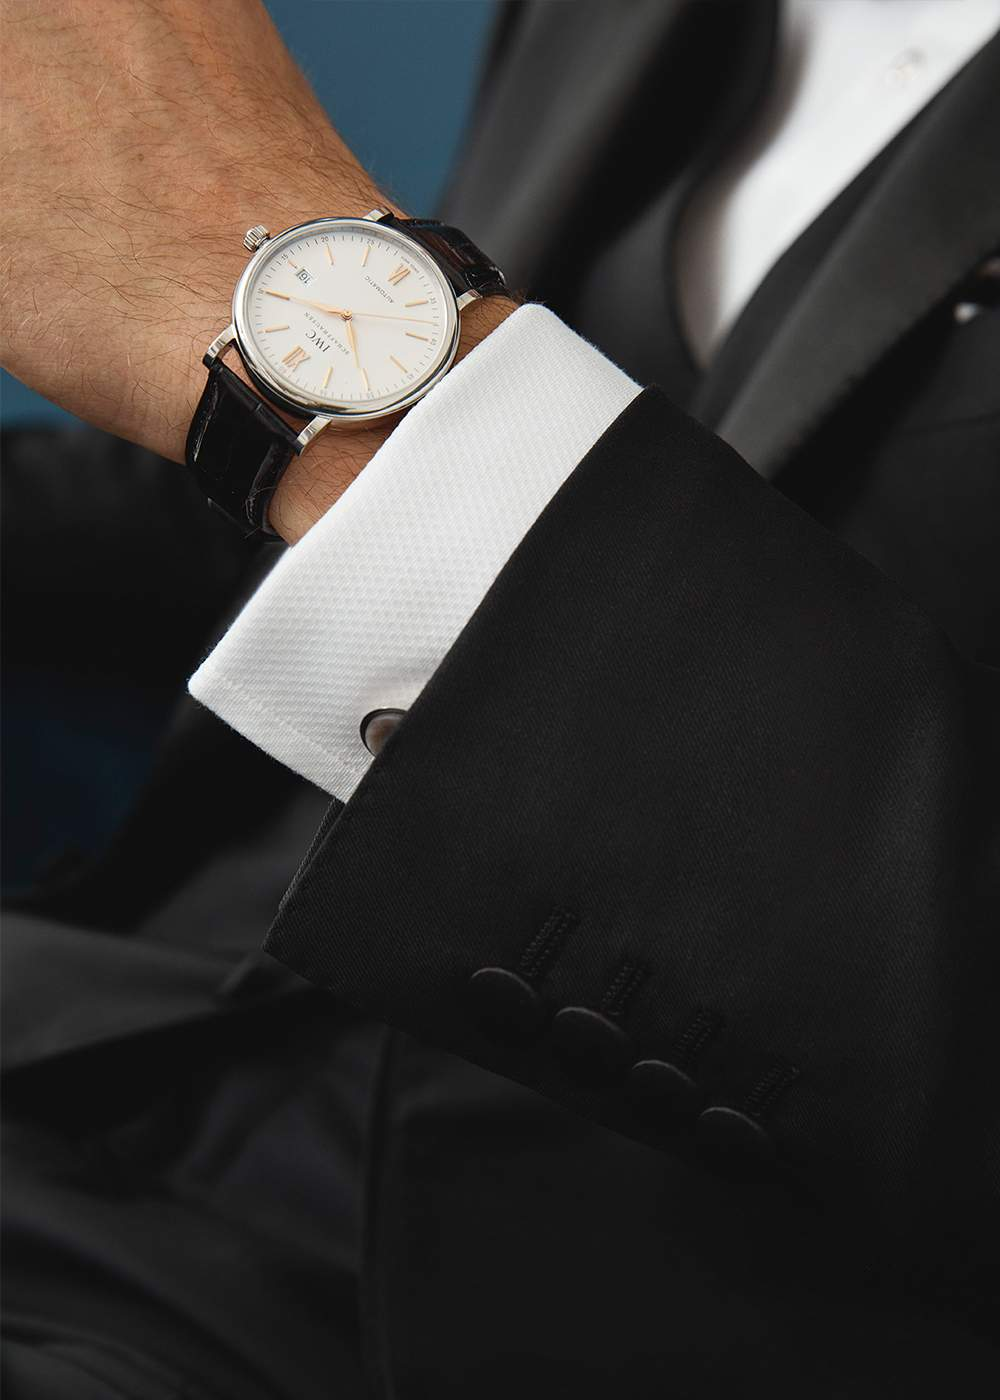 The New Rules of Black Tie | Dress Code